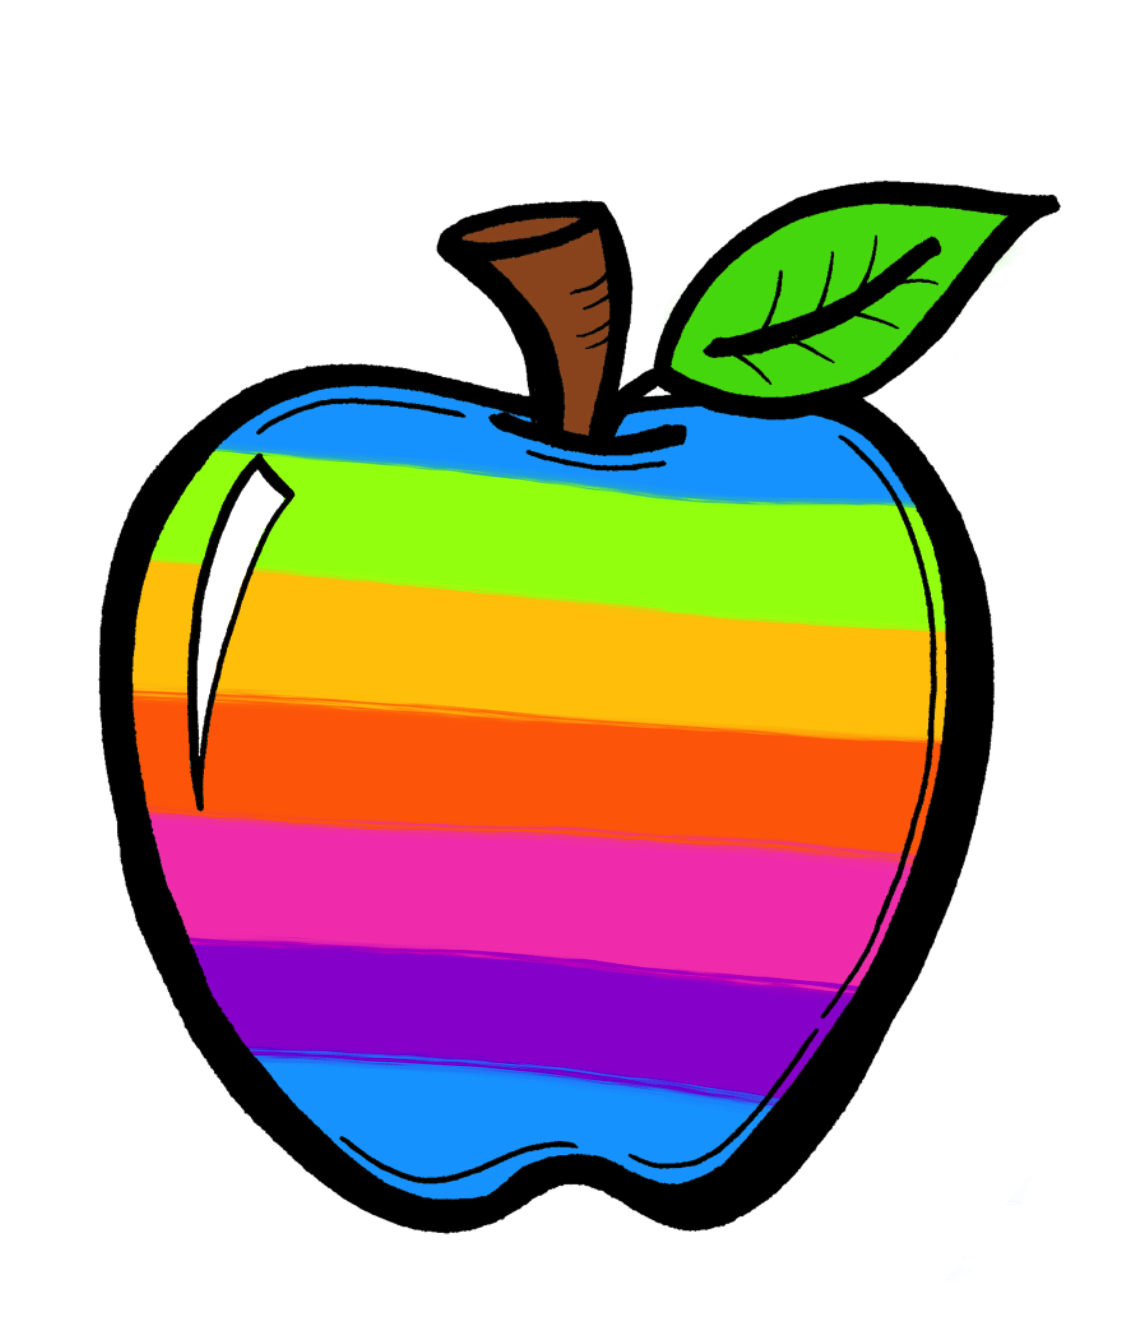 Patterned apple clipart clip art library stock The Creative Chalkboard: FREE Rainbow Apples and New Clipart Sets ... clip art library stock